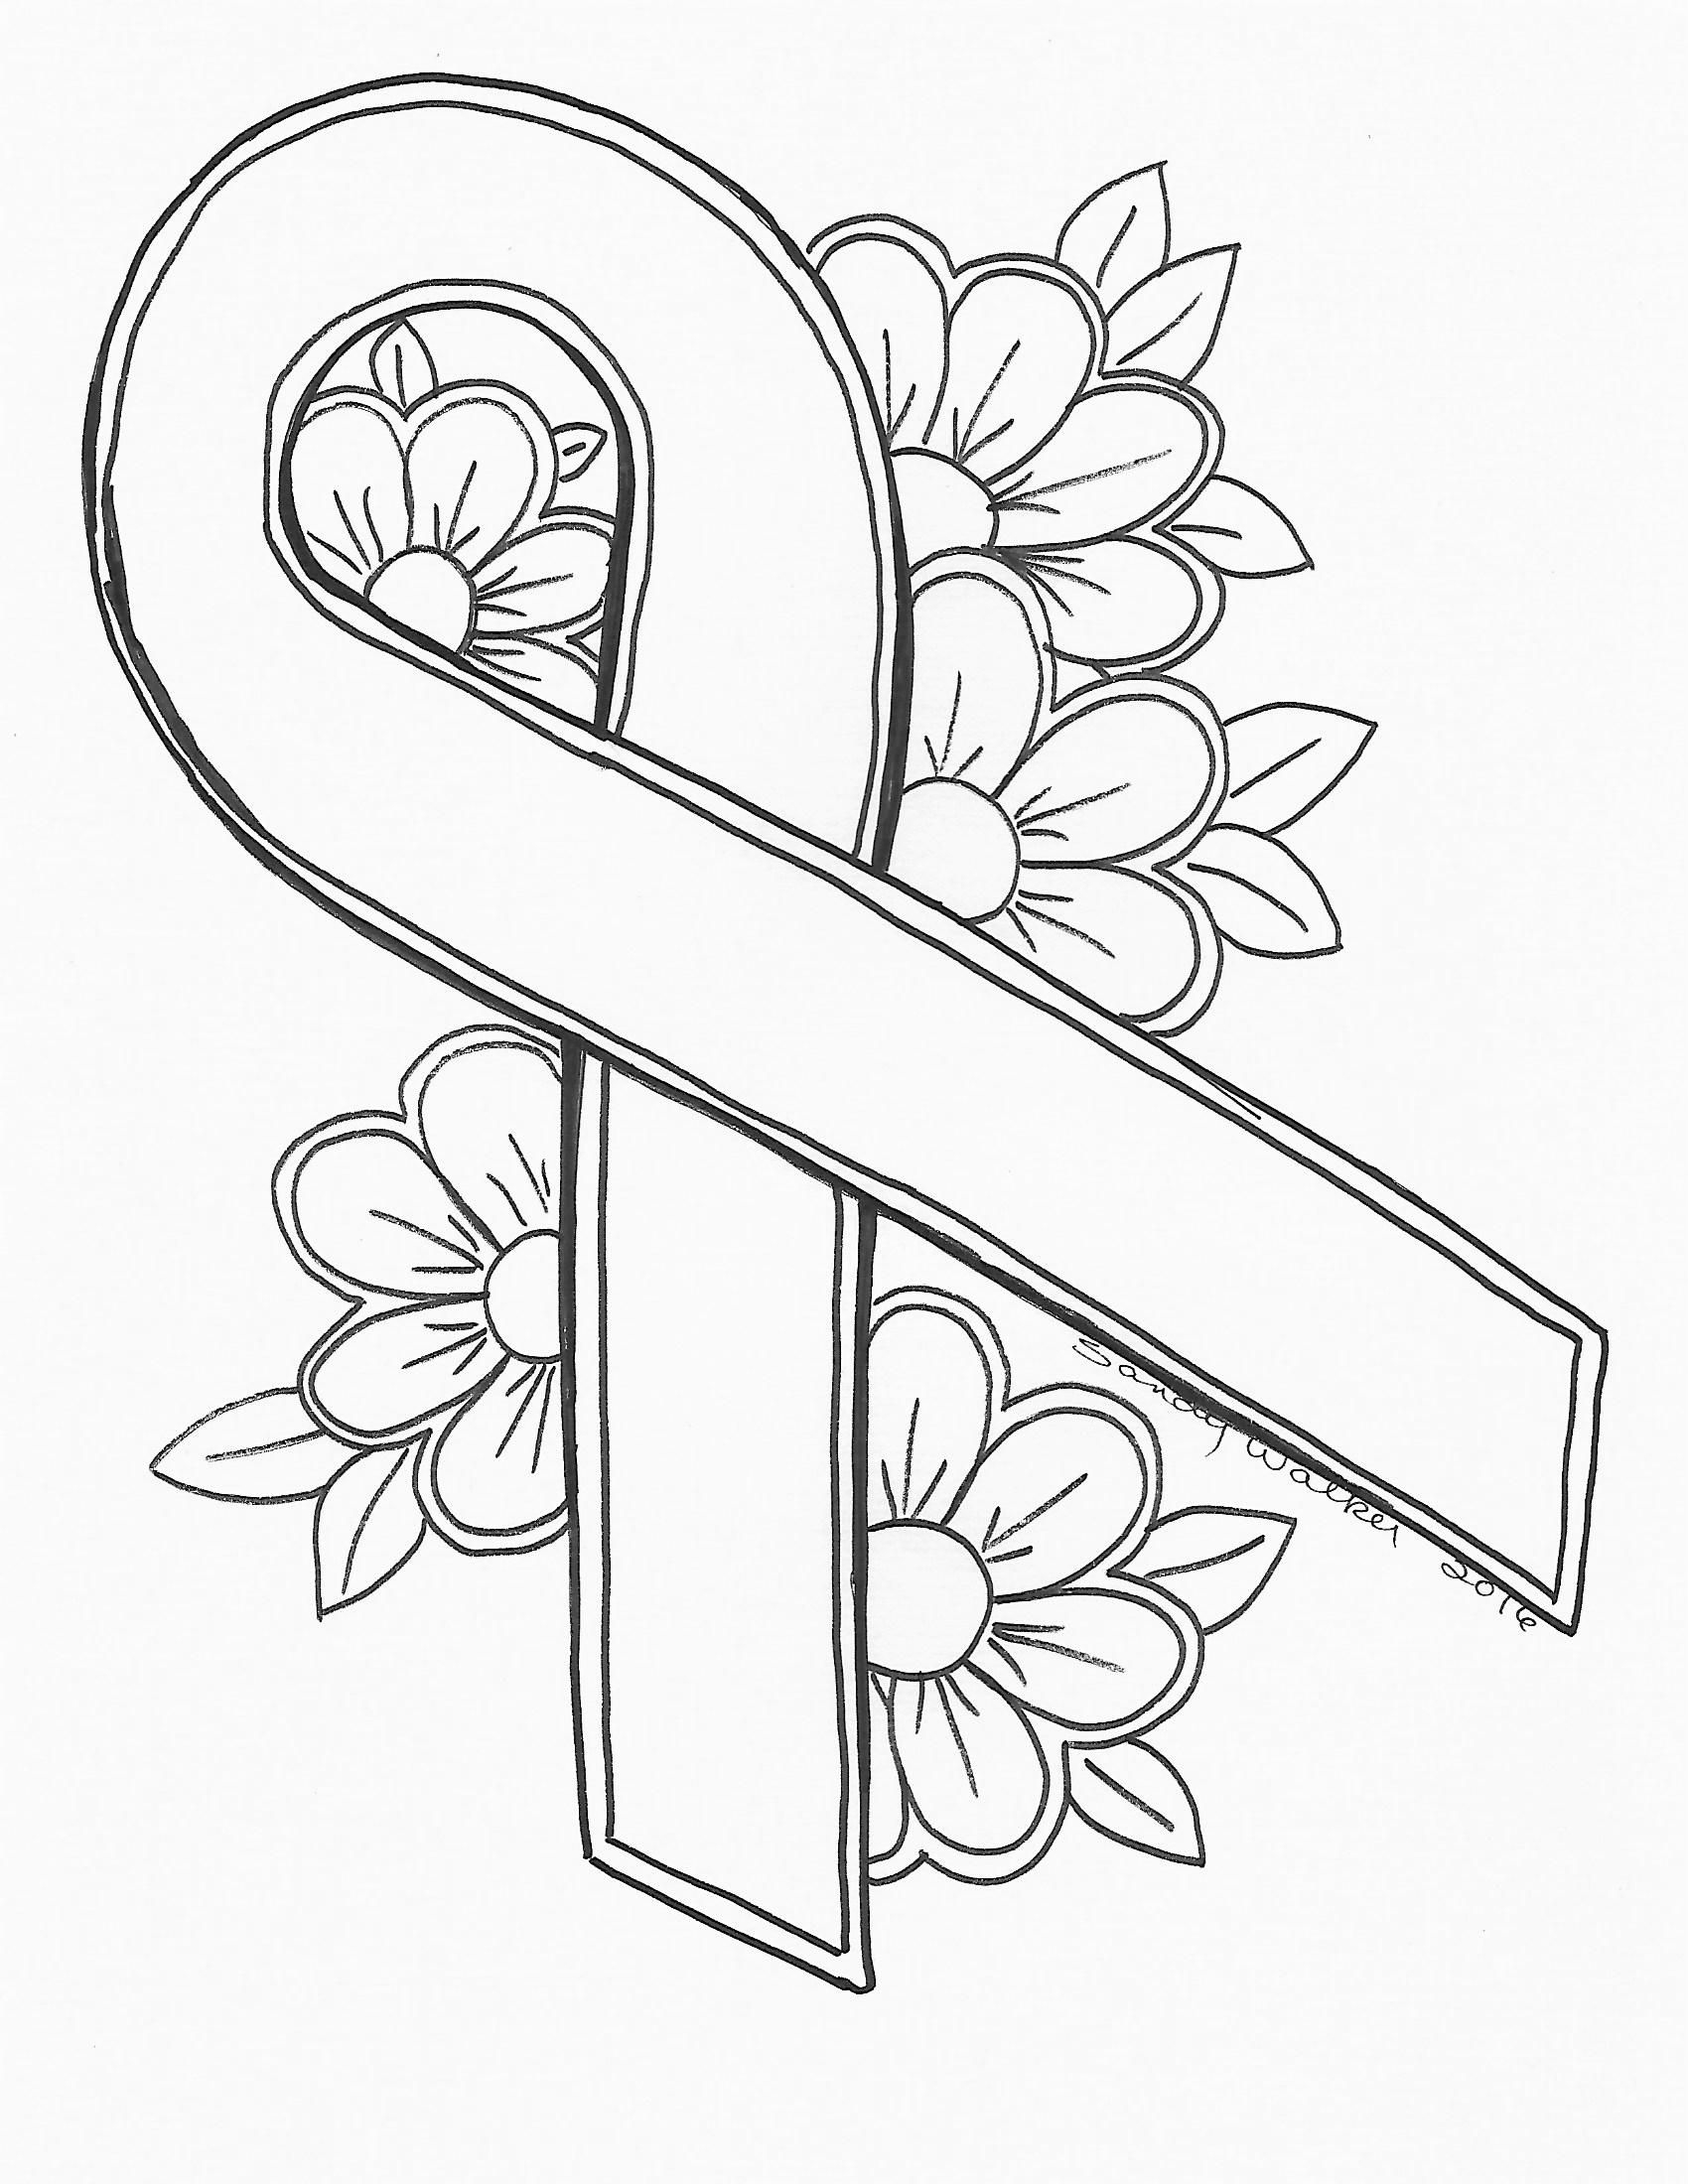 An original by Sandra Walker 2016 Ribbon for Cancer Color It Any Printable Of Cancer Ribbon Drawing at Getdrawings to Print